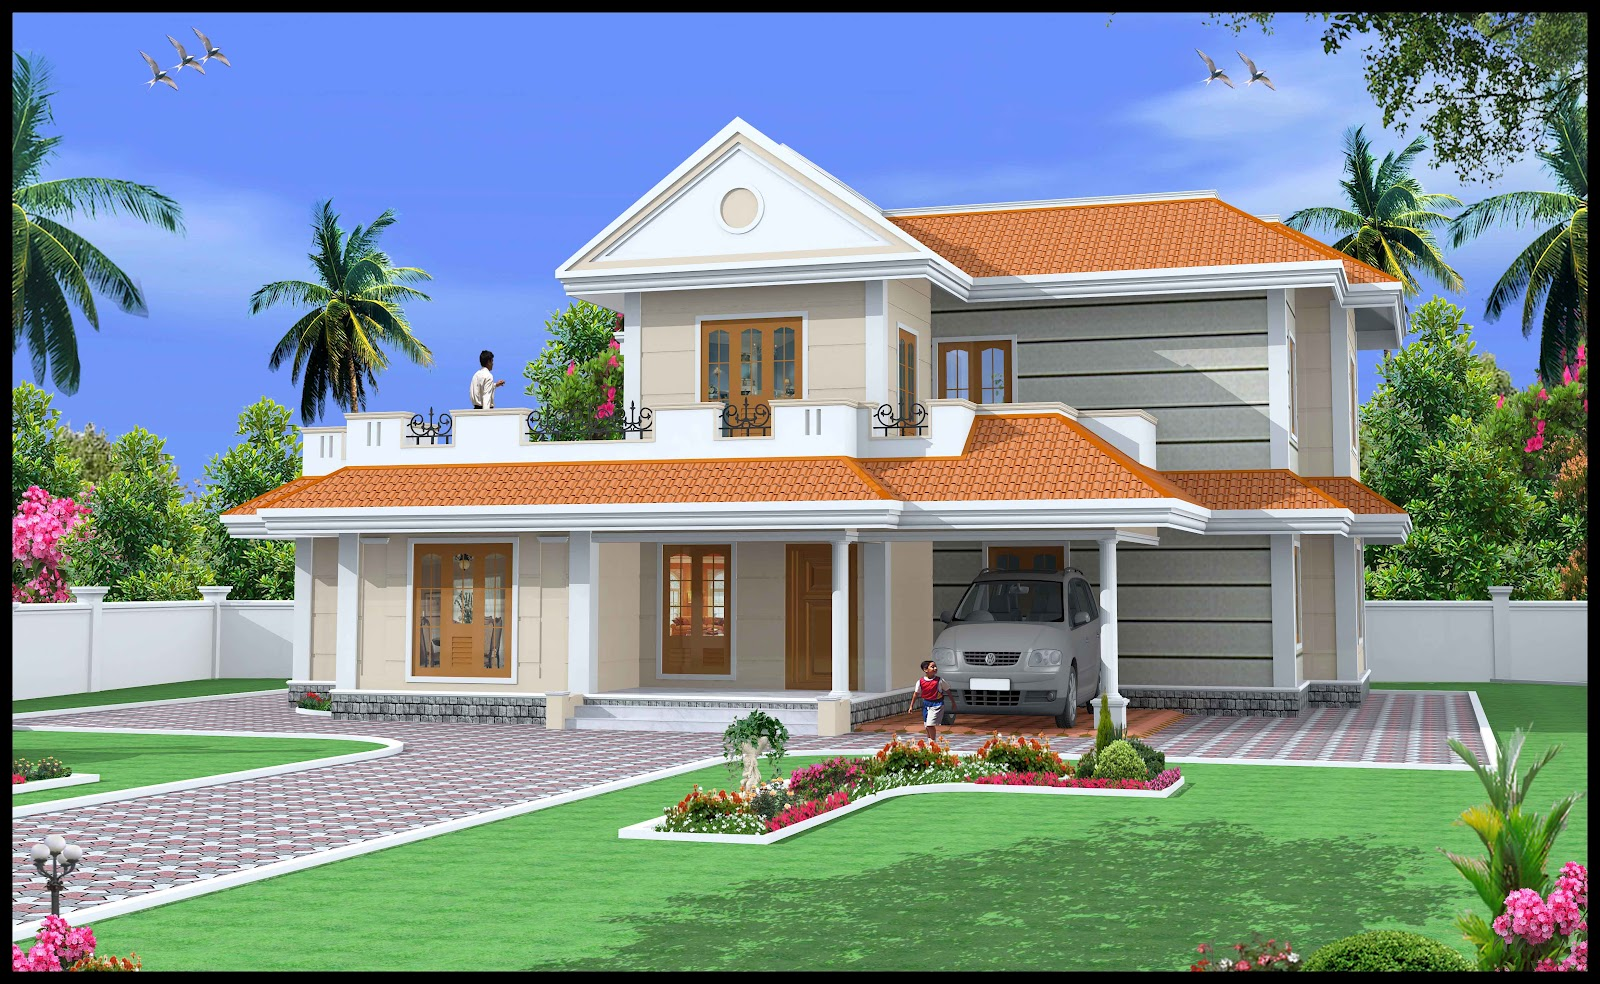 Green homes construction indian style duplex house 2600 for Duplex home plans indian style